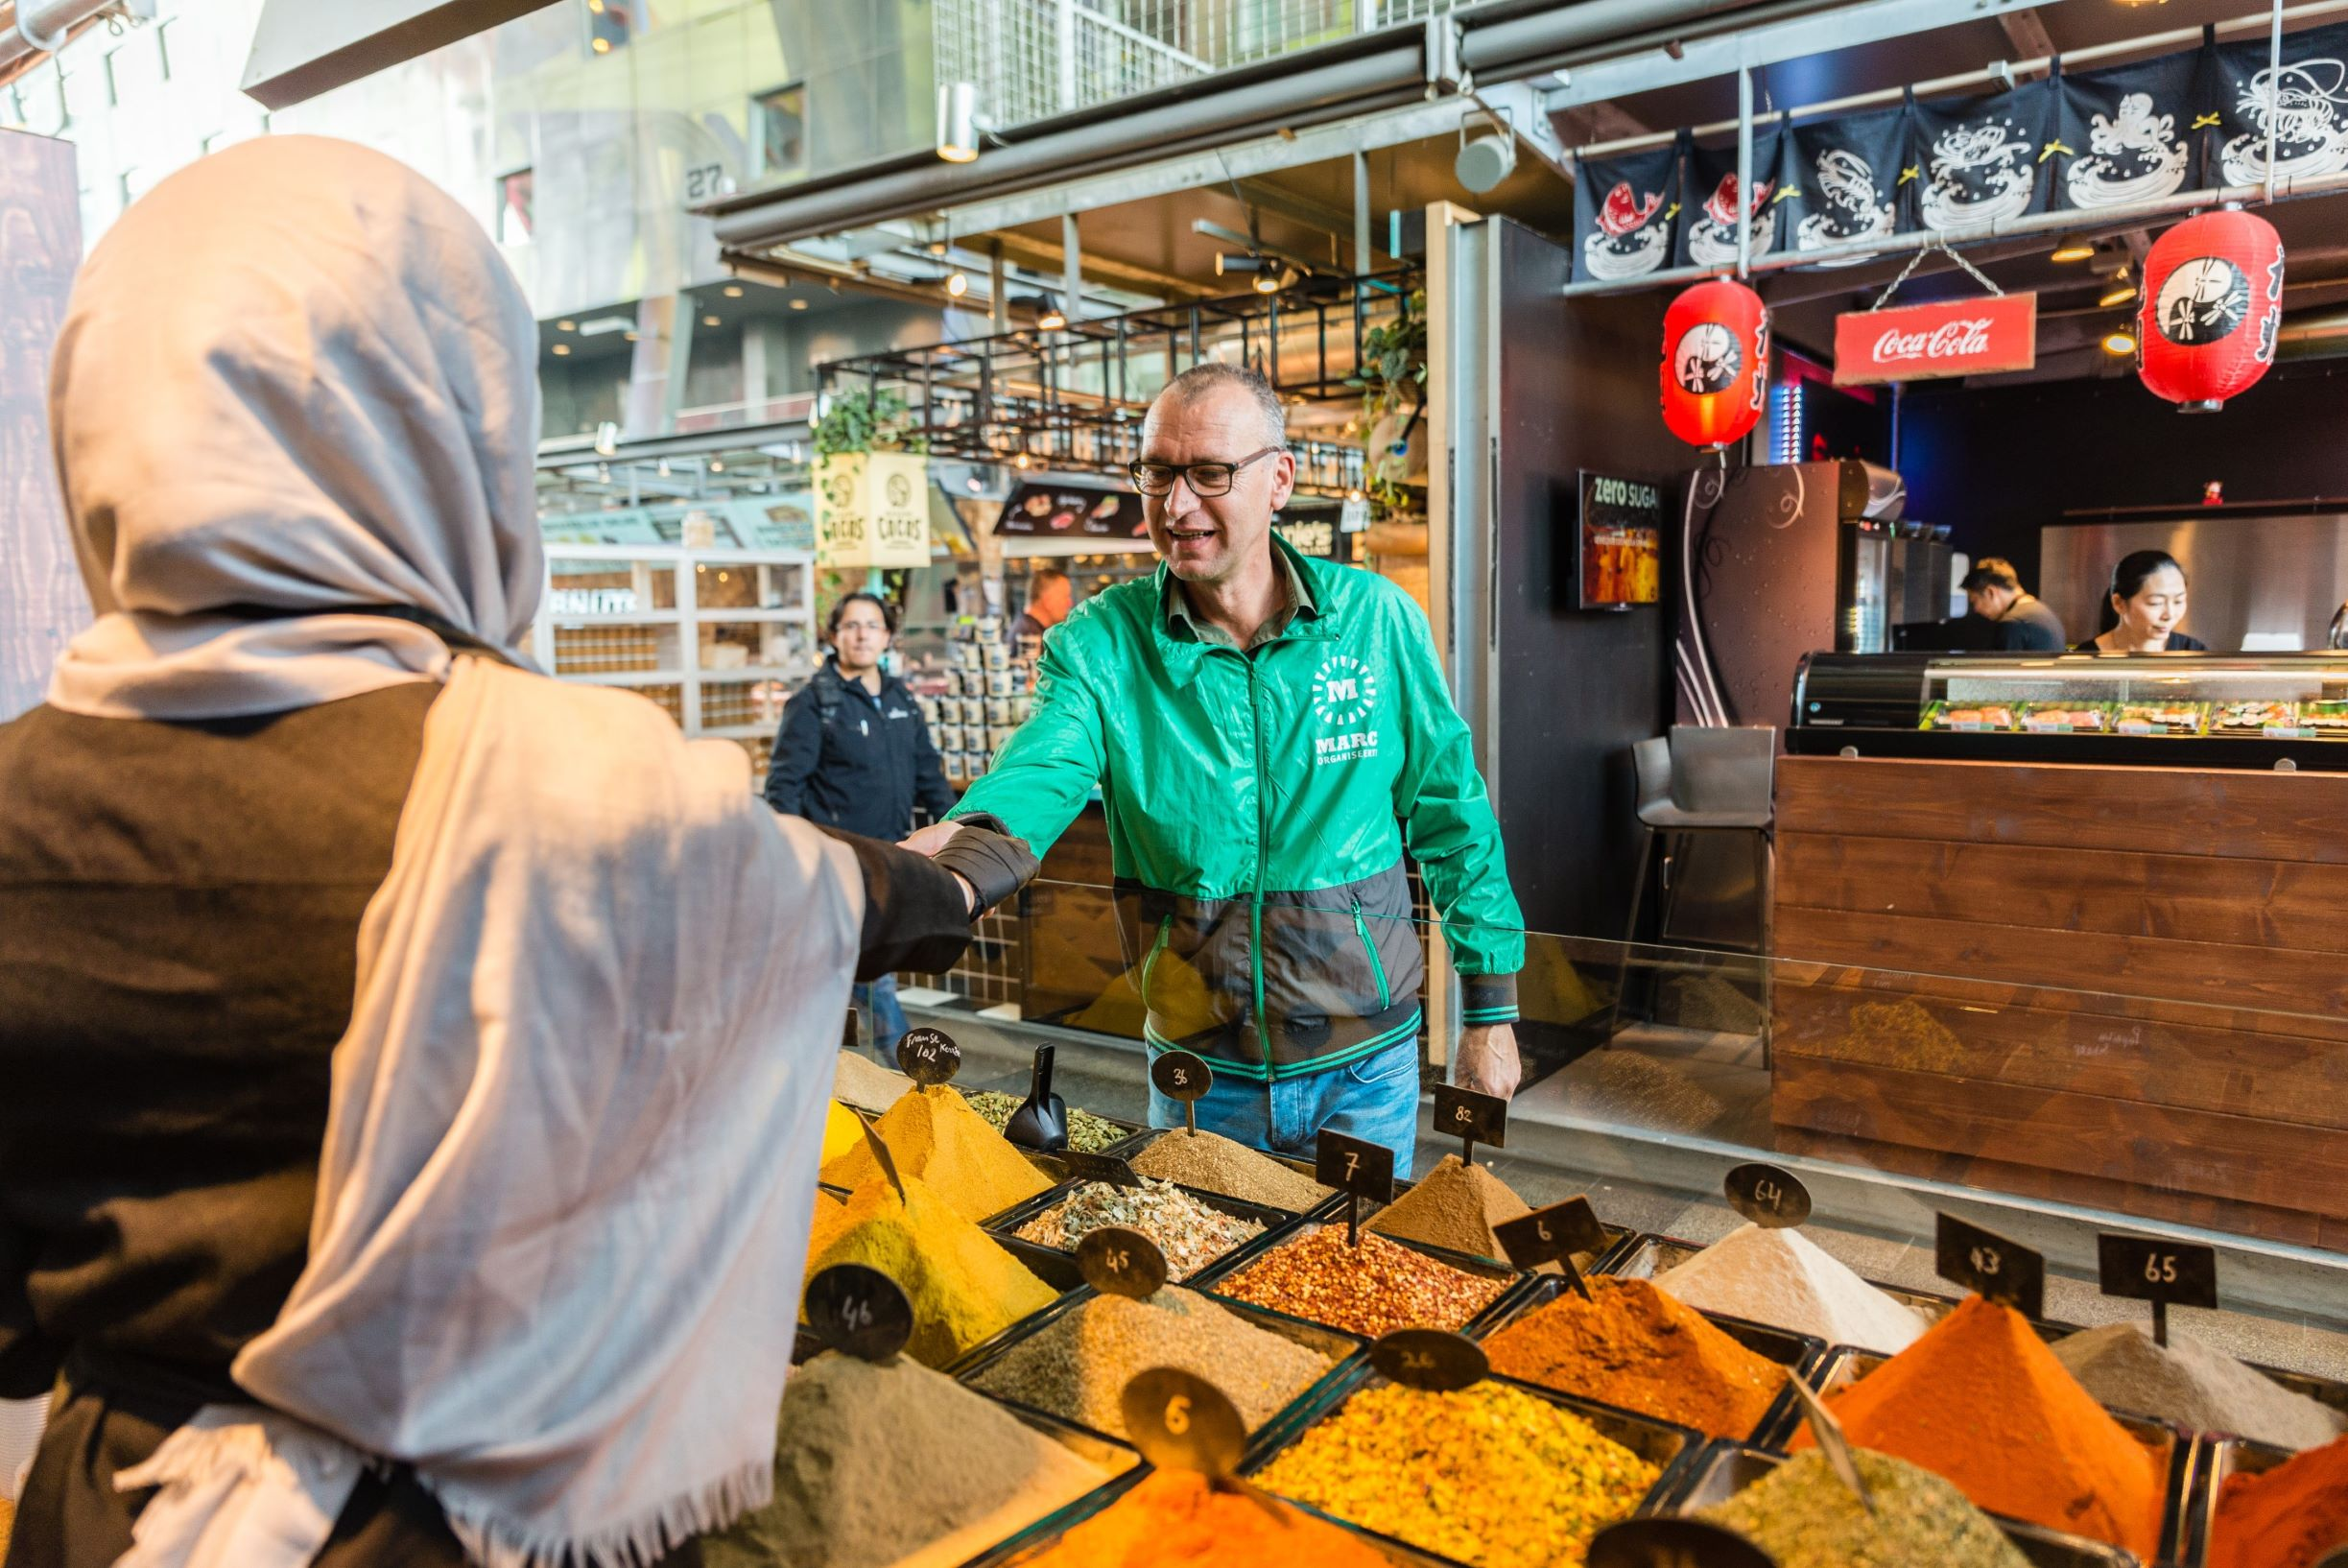 Rotterdam Tour Food Market Hal Blaak Herbs Spices City